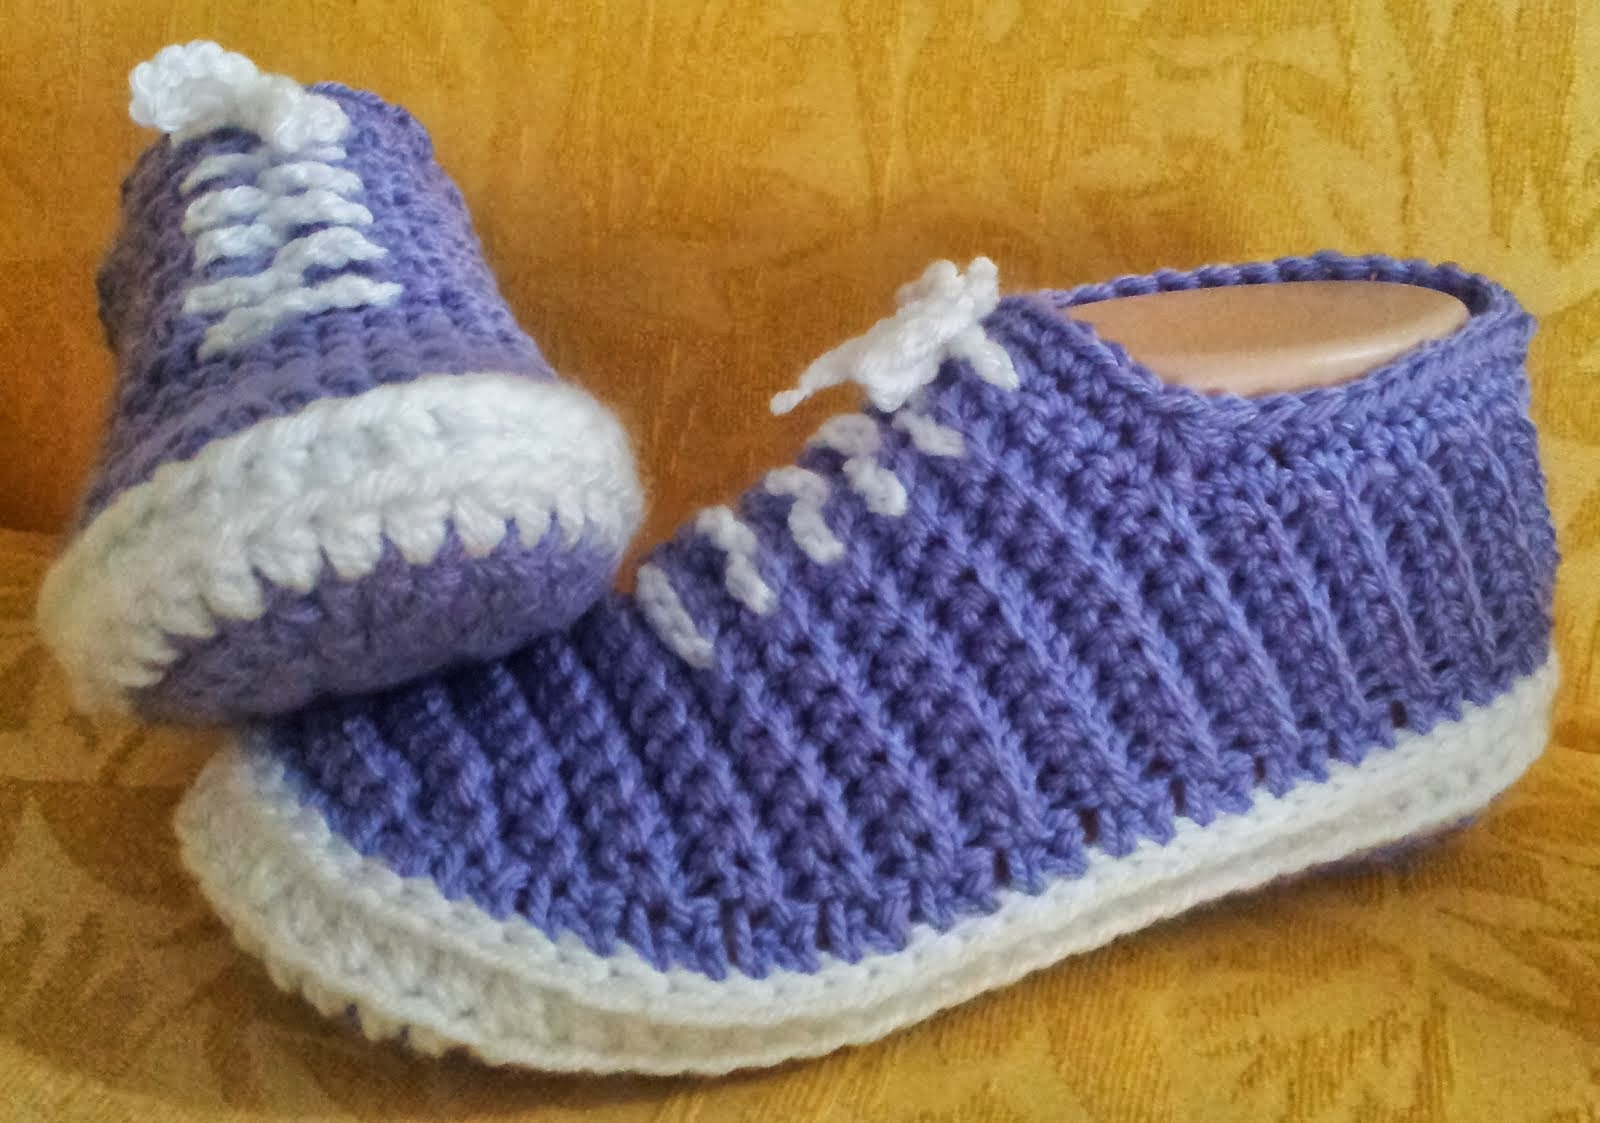 Crochet Shoes : This pattern is cheap, not free. Click on the links below to find it.